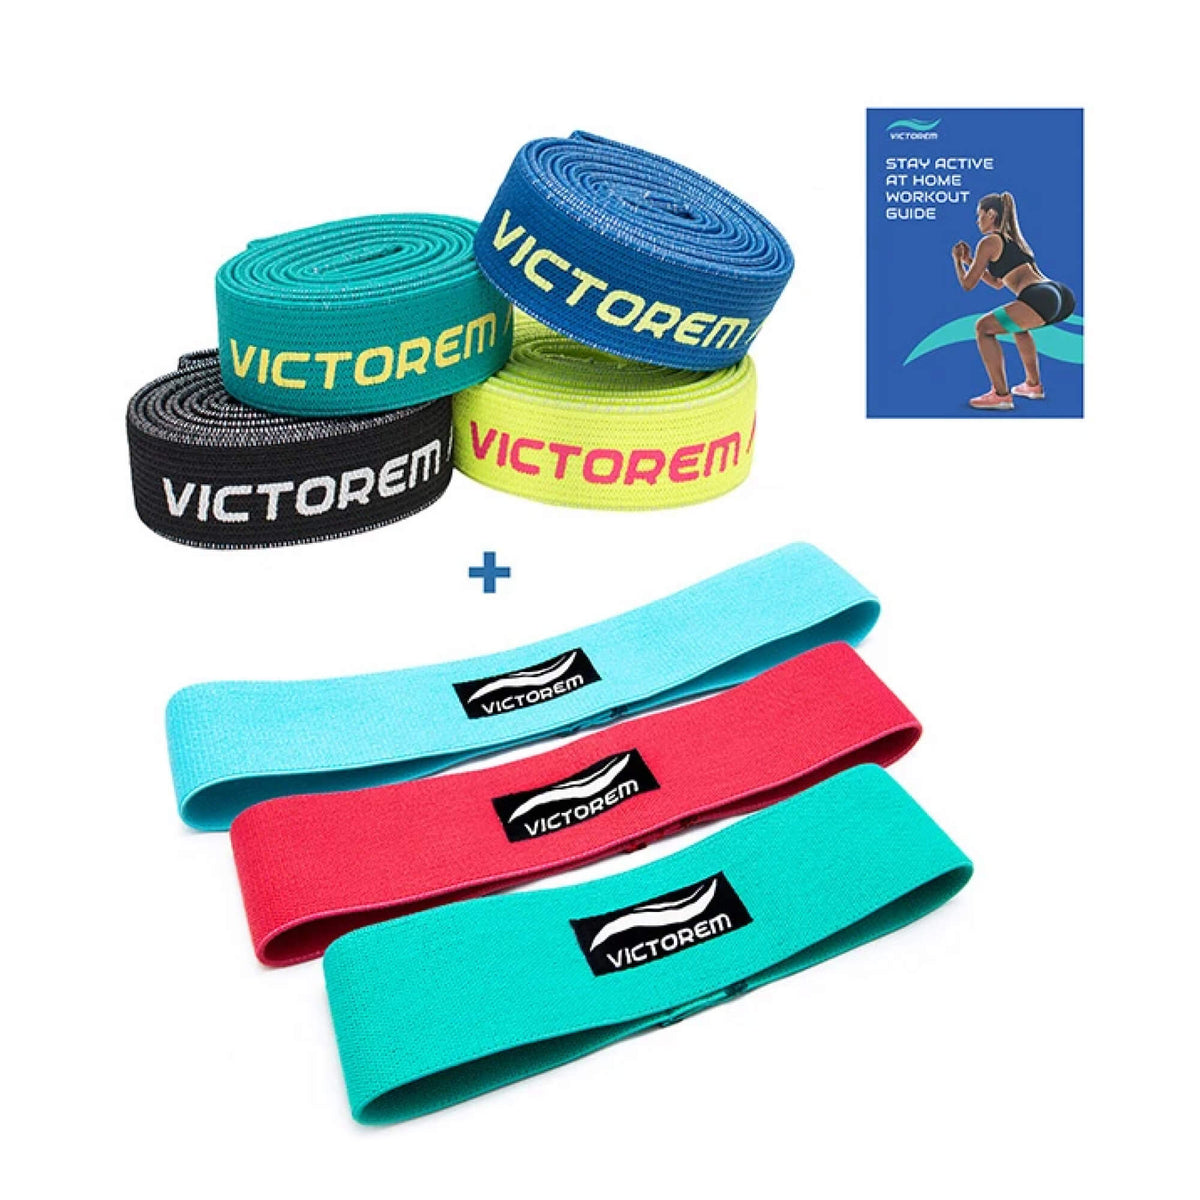 stay active at home bundle set